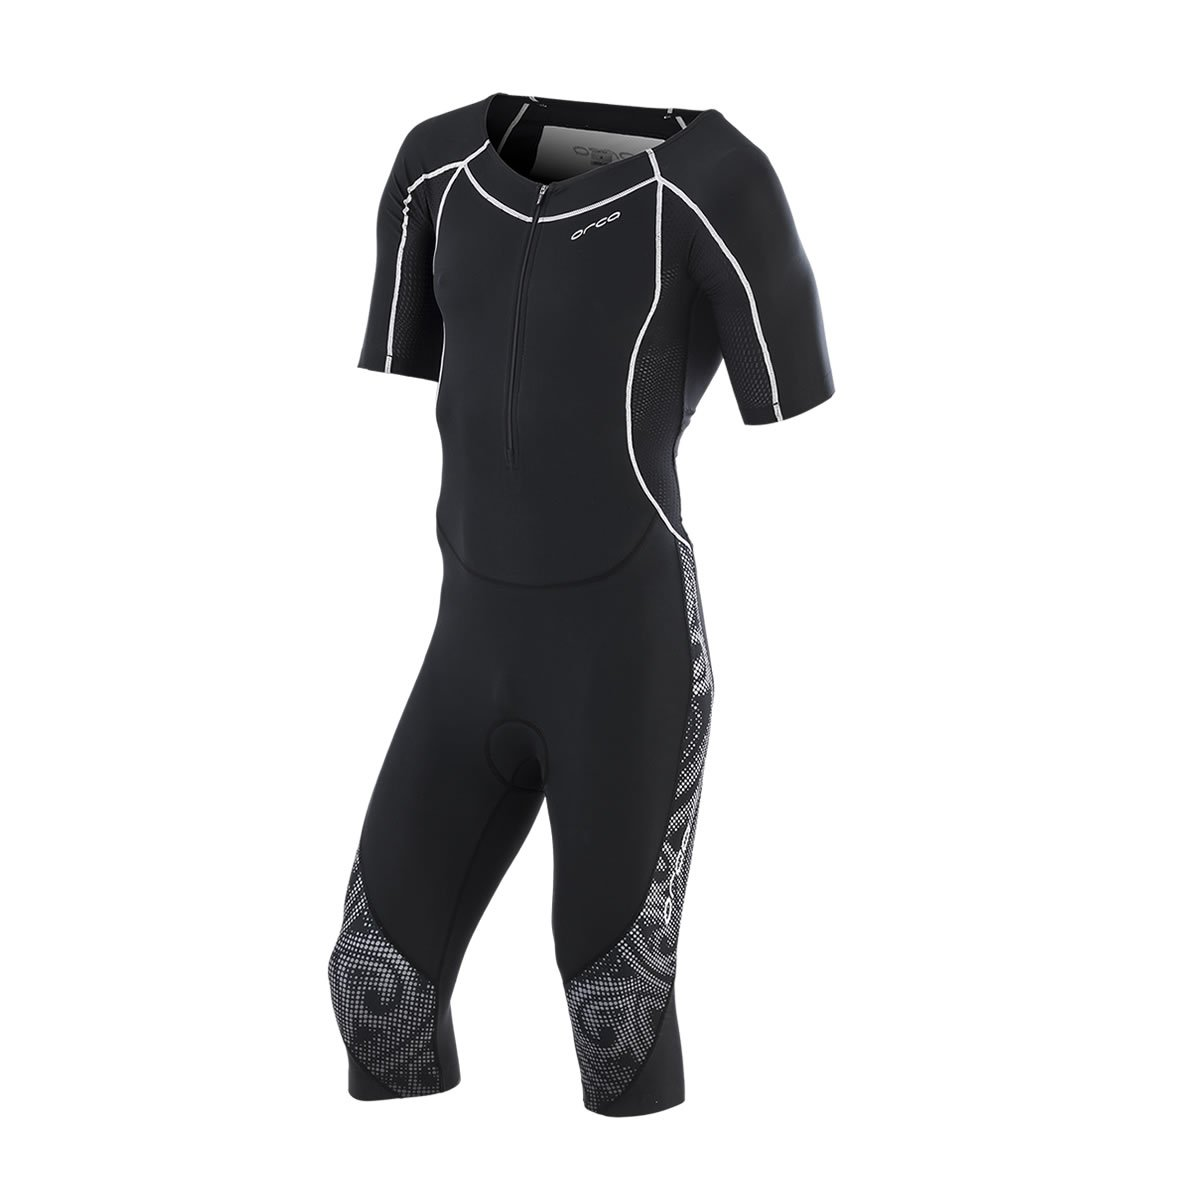 226 Kompress Winter Race Suit Men - Orca - FVD14602